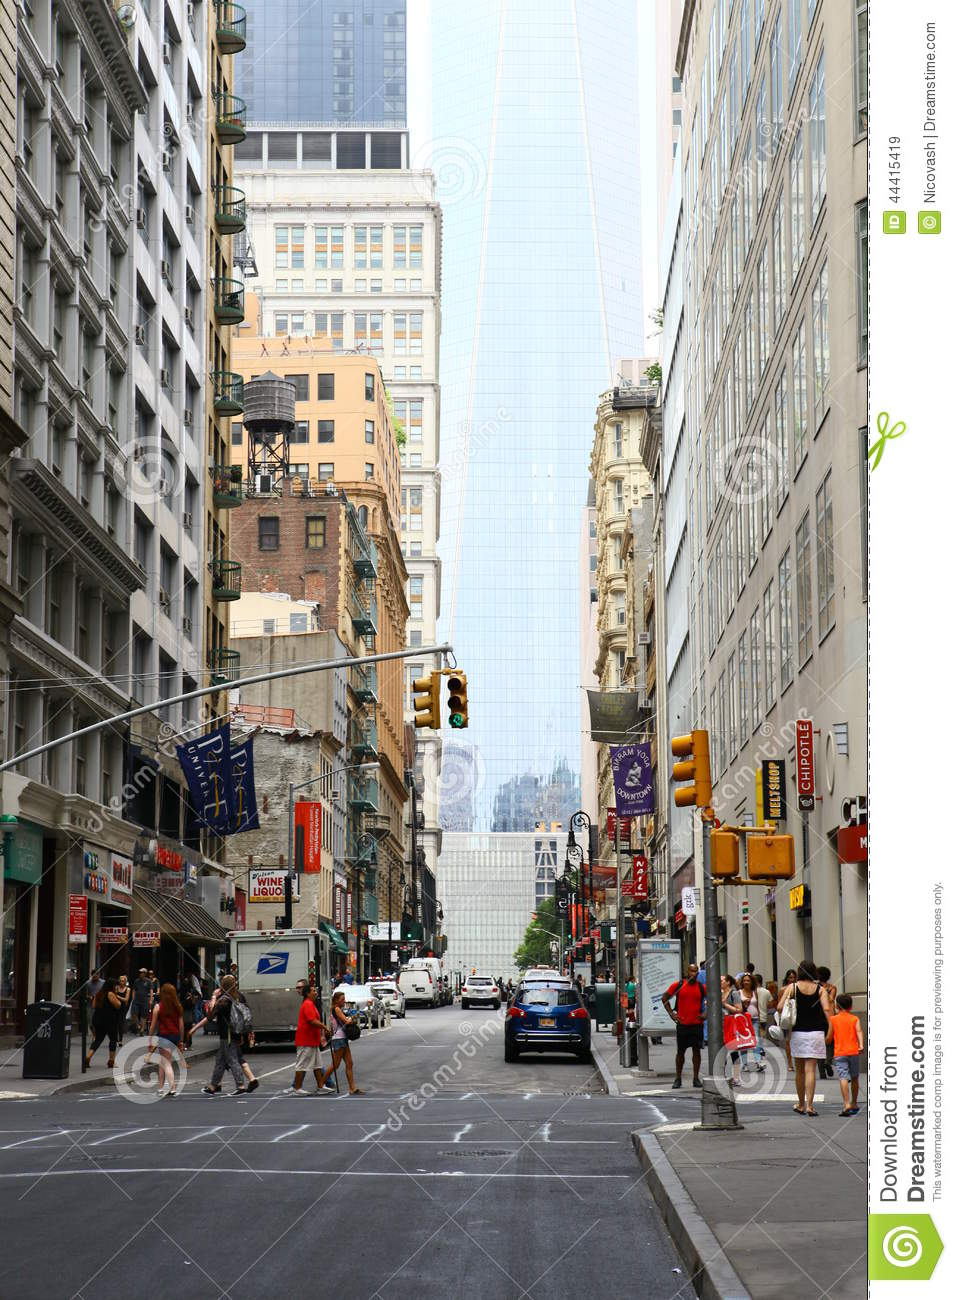 City Life Of New York Editorial Stock Image. Image Of Life